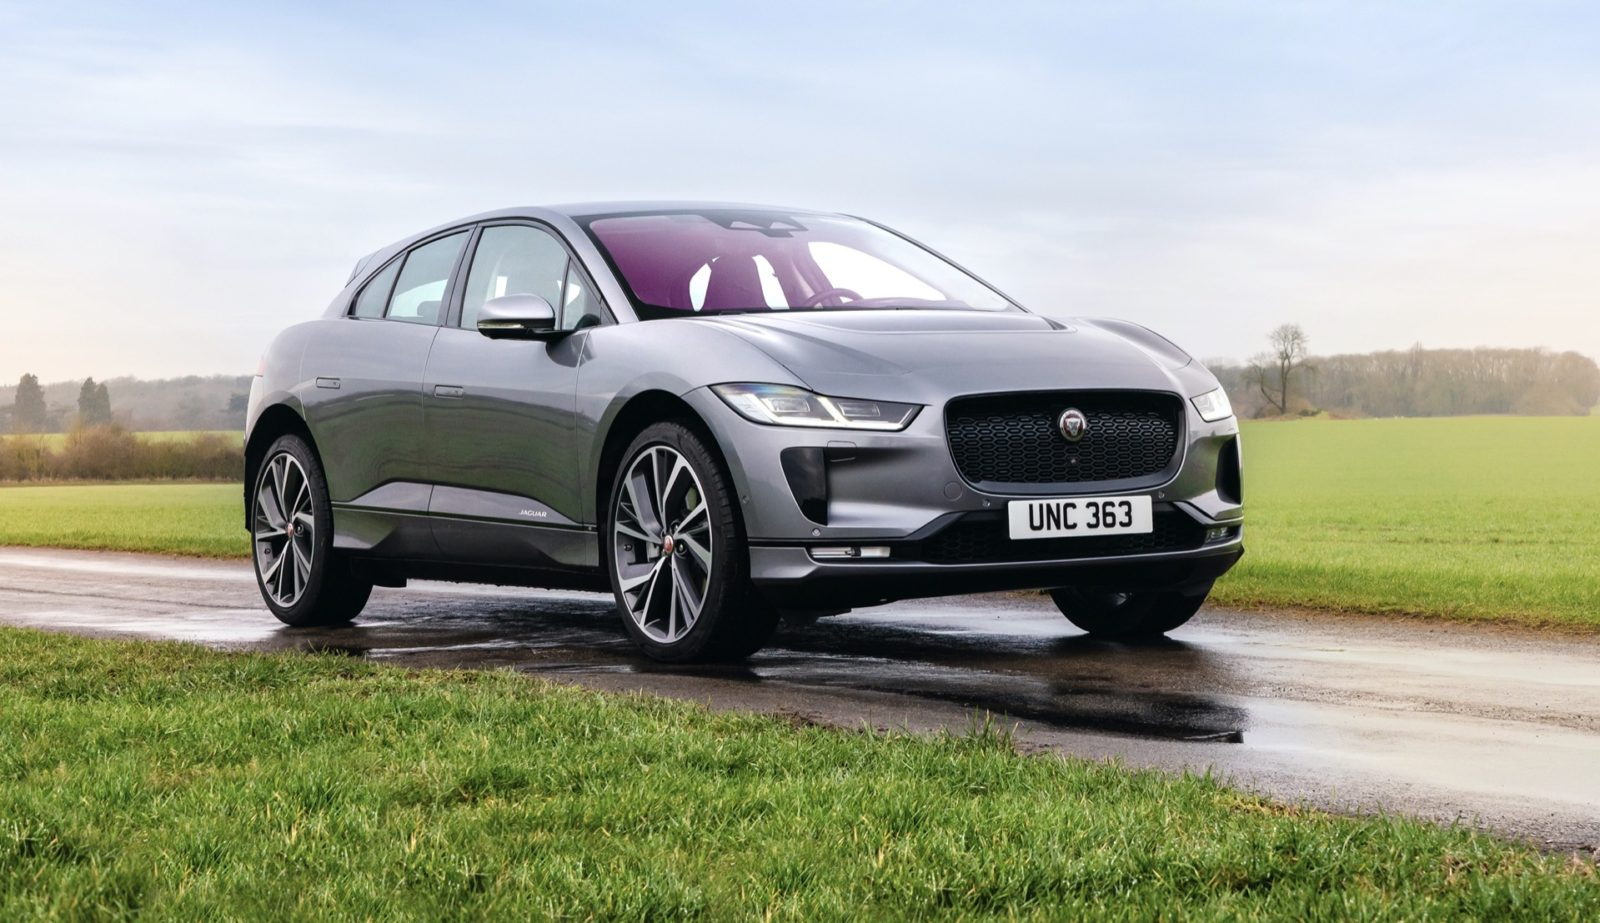 preview:-2022-jaguar-i-pace-revealed-with-improved-charging,-infotainment